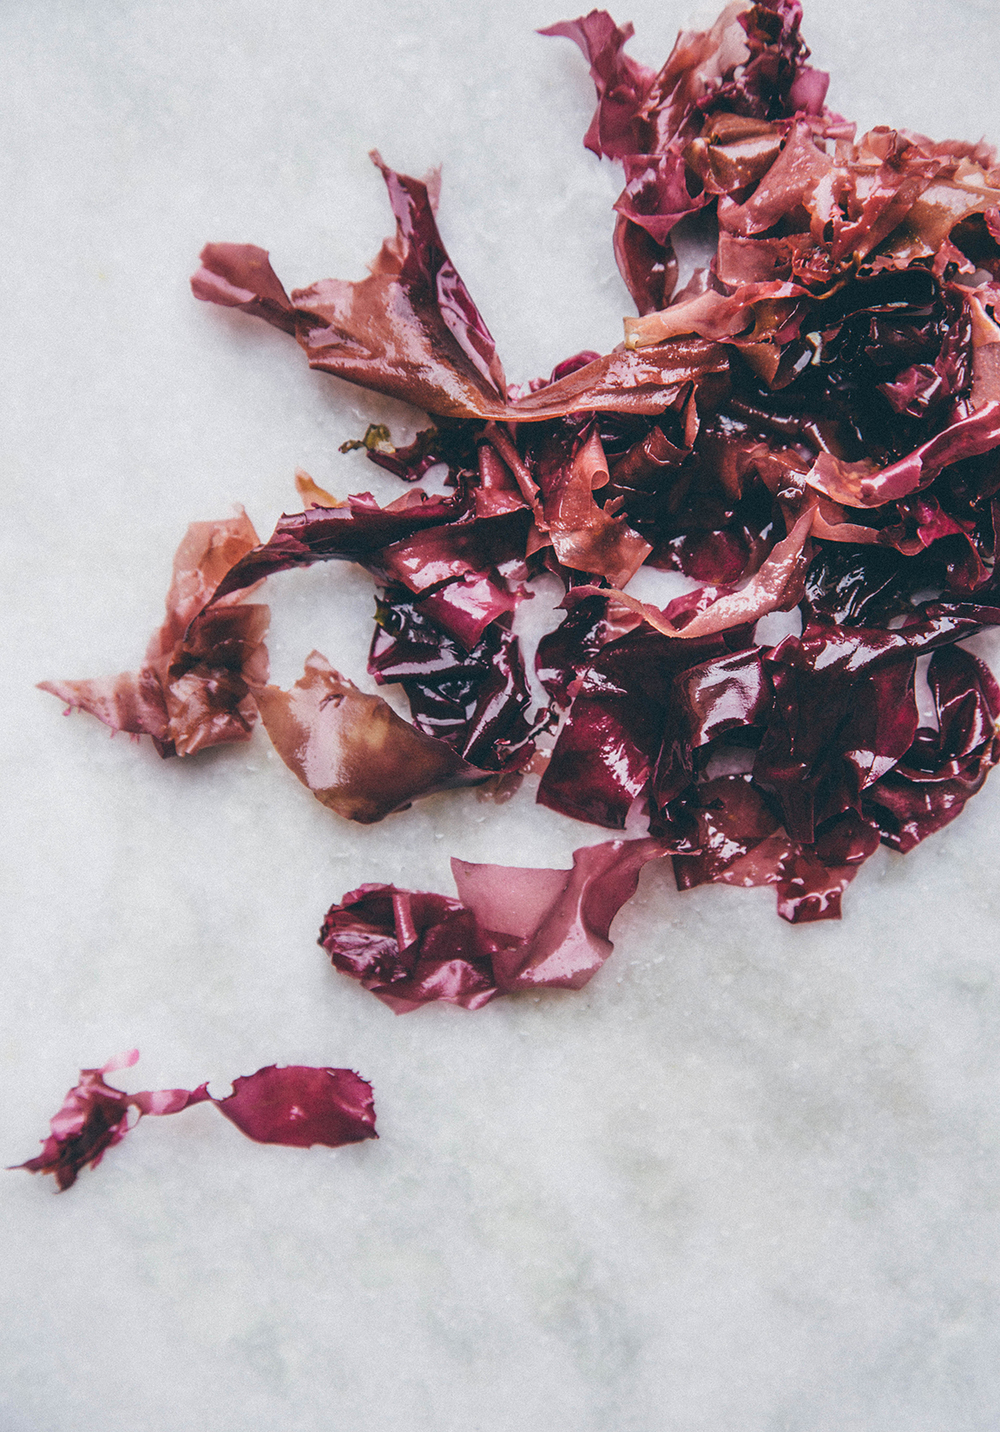 The highly nutritious sea weed Dulse has been enjoyed around Ireland and the coast of northern Europe as a food for at least hundreds of years back in time. To much of a good things is never good though, and balance is key. Common health and safety advice promotes a maximum of 5 grams of sea weed per day and person.